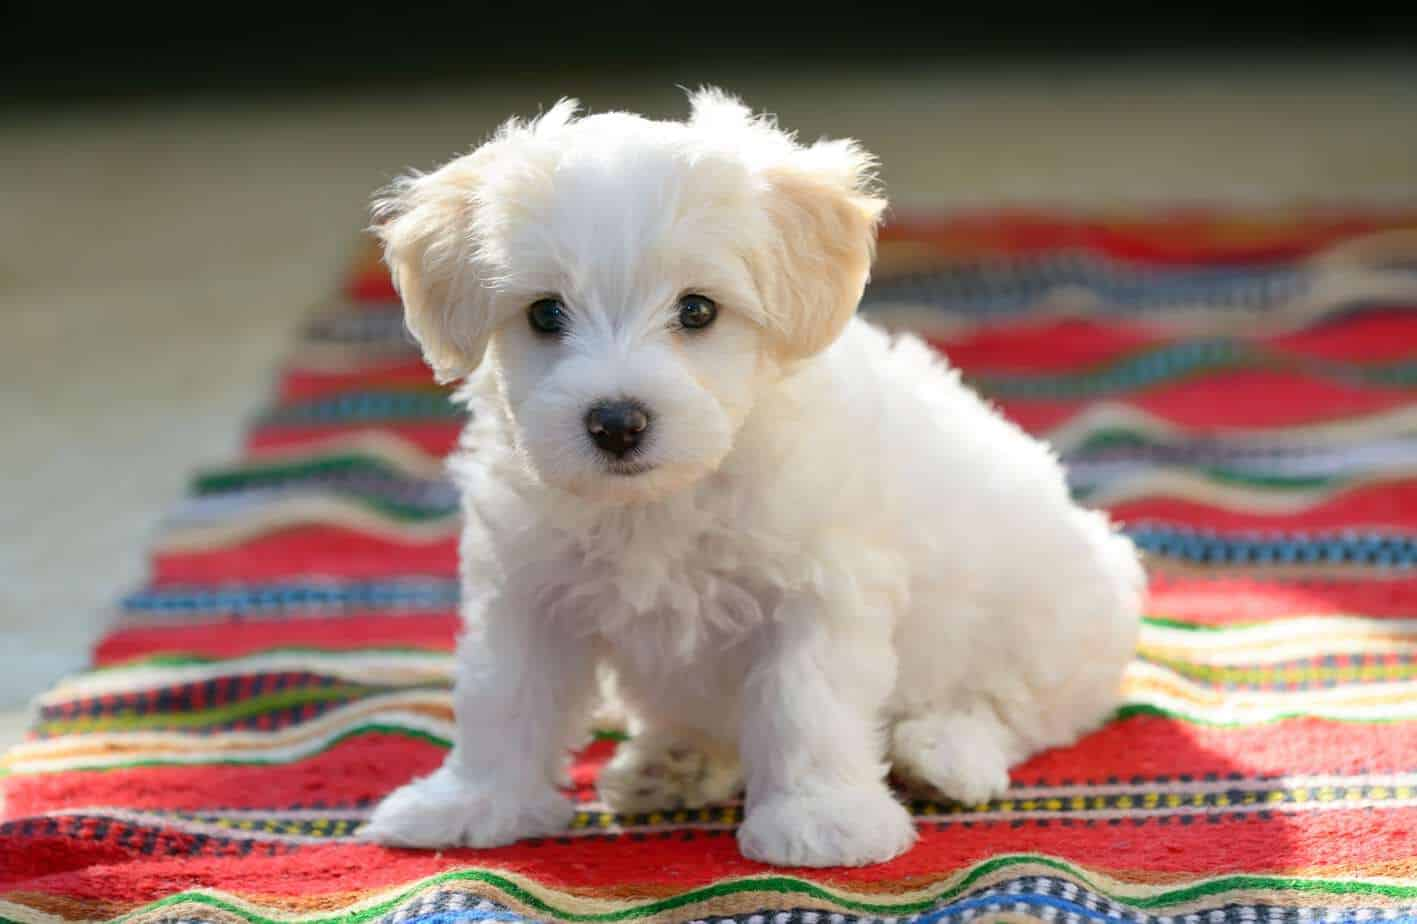 Maltese puppy sits on a striped rug. Creating a daily routine for dogs makes it easier to take care of them, potty train, and reduce separation anxiety fears.